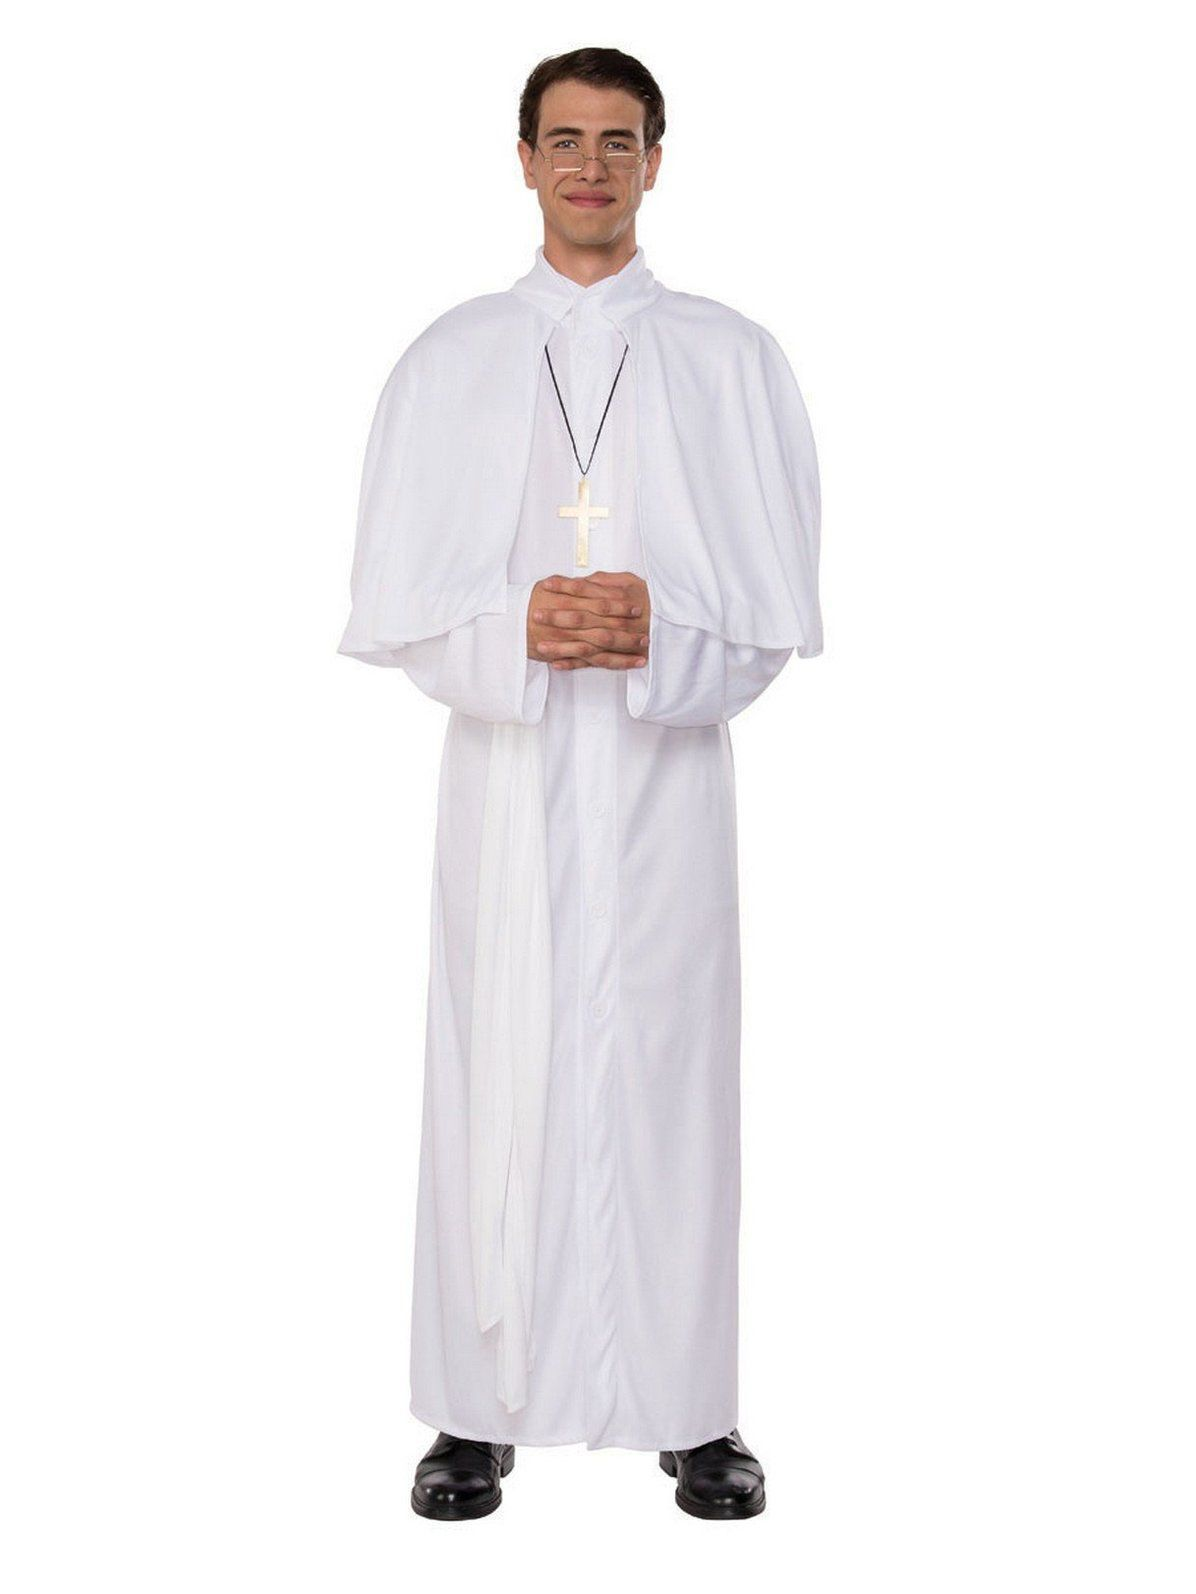 ADULT PRIEST OR NUN COSTUME RELIGIOUS CLERGY NOVELTY FANCY DRESS LADIES MENS